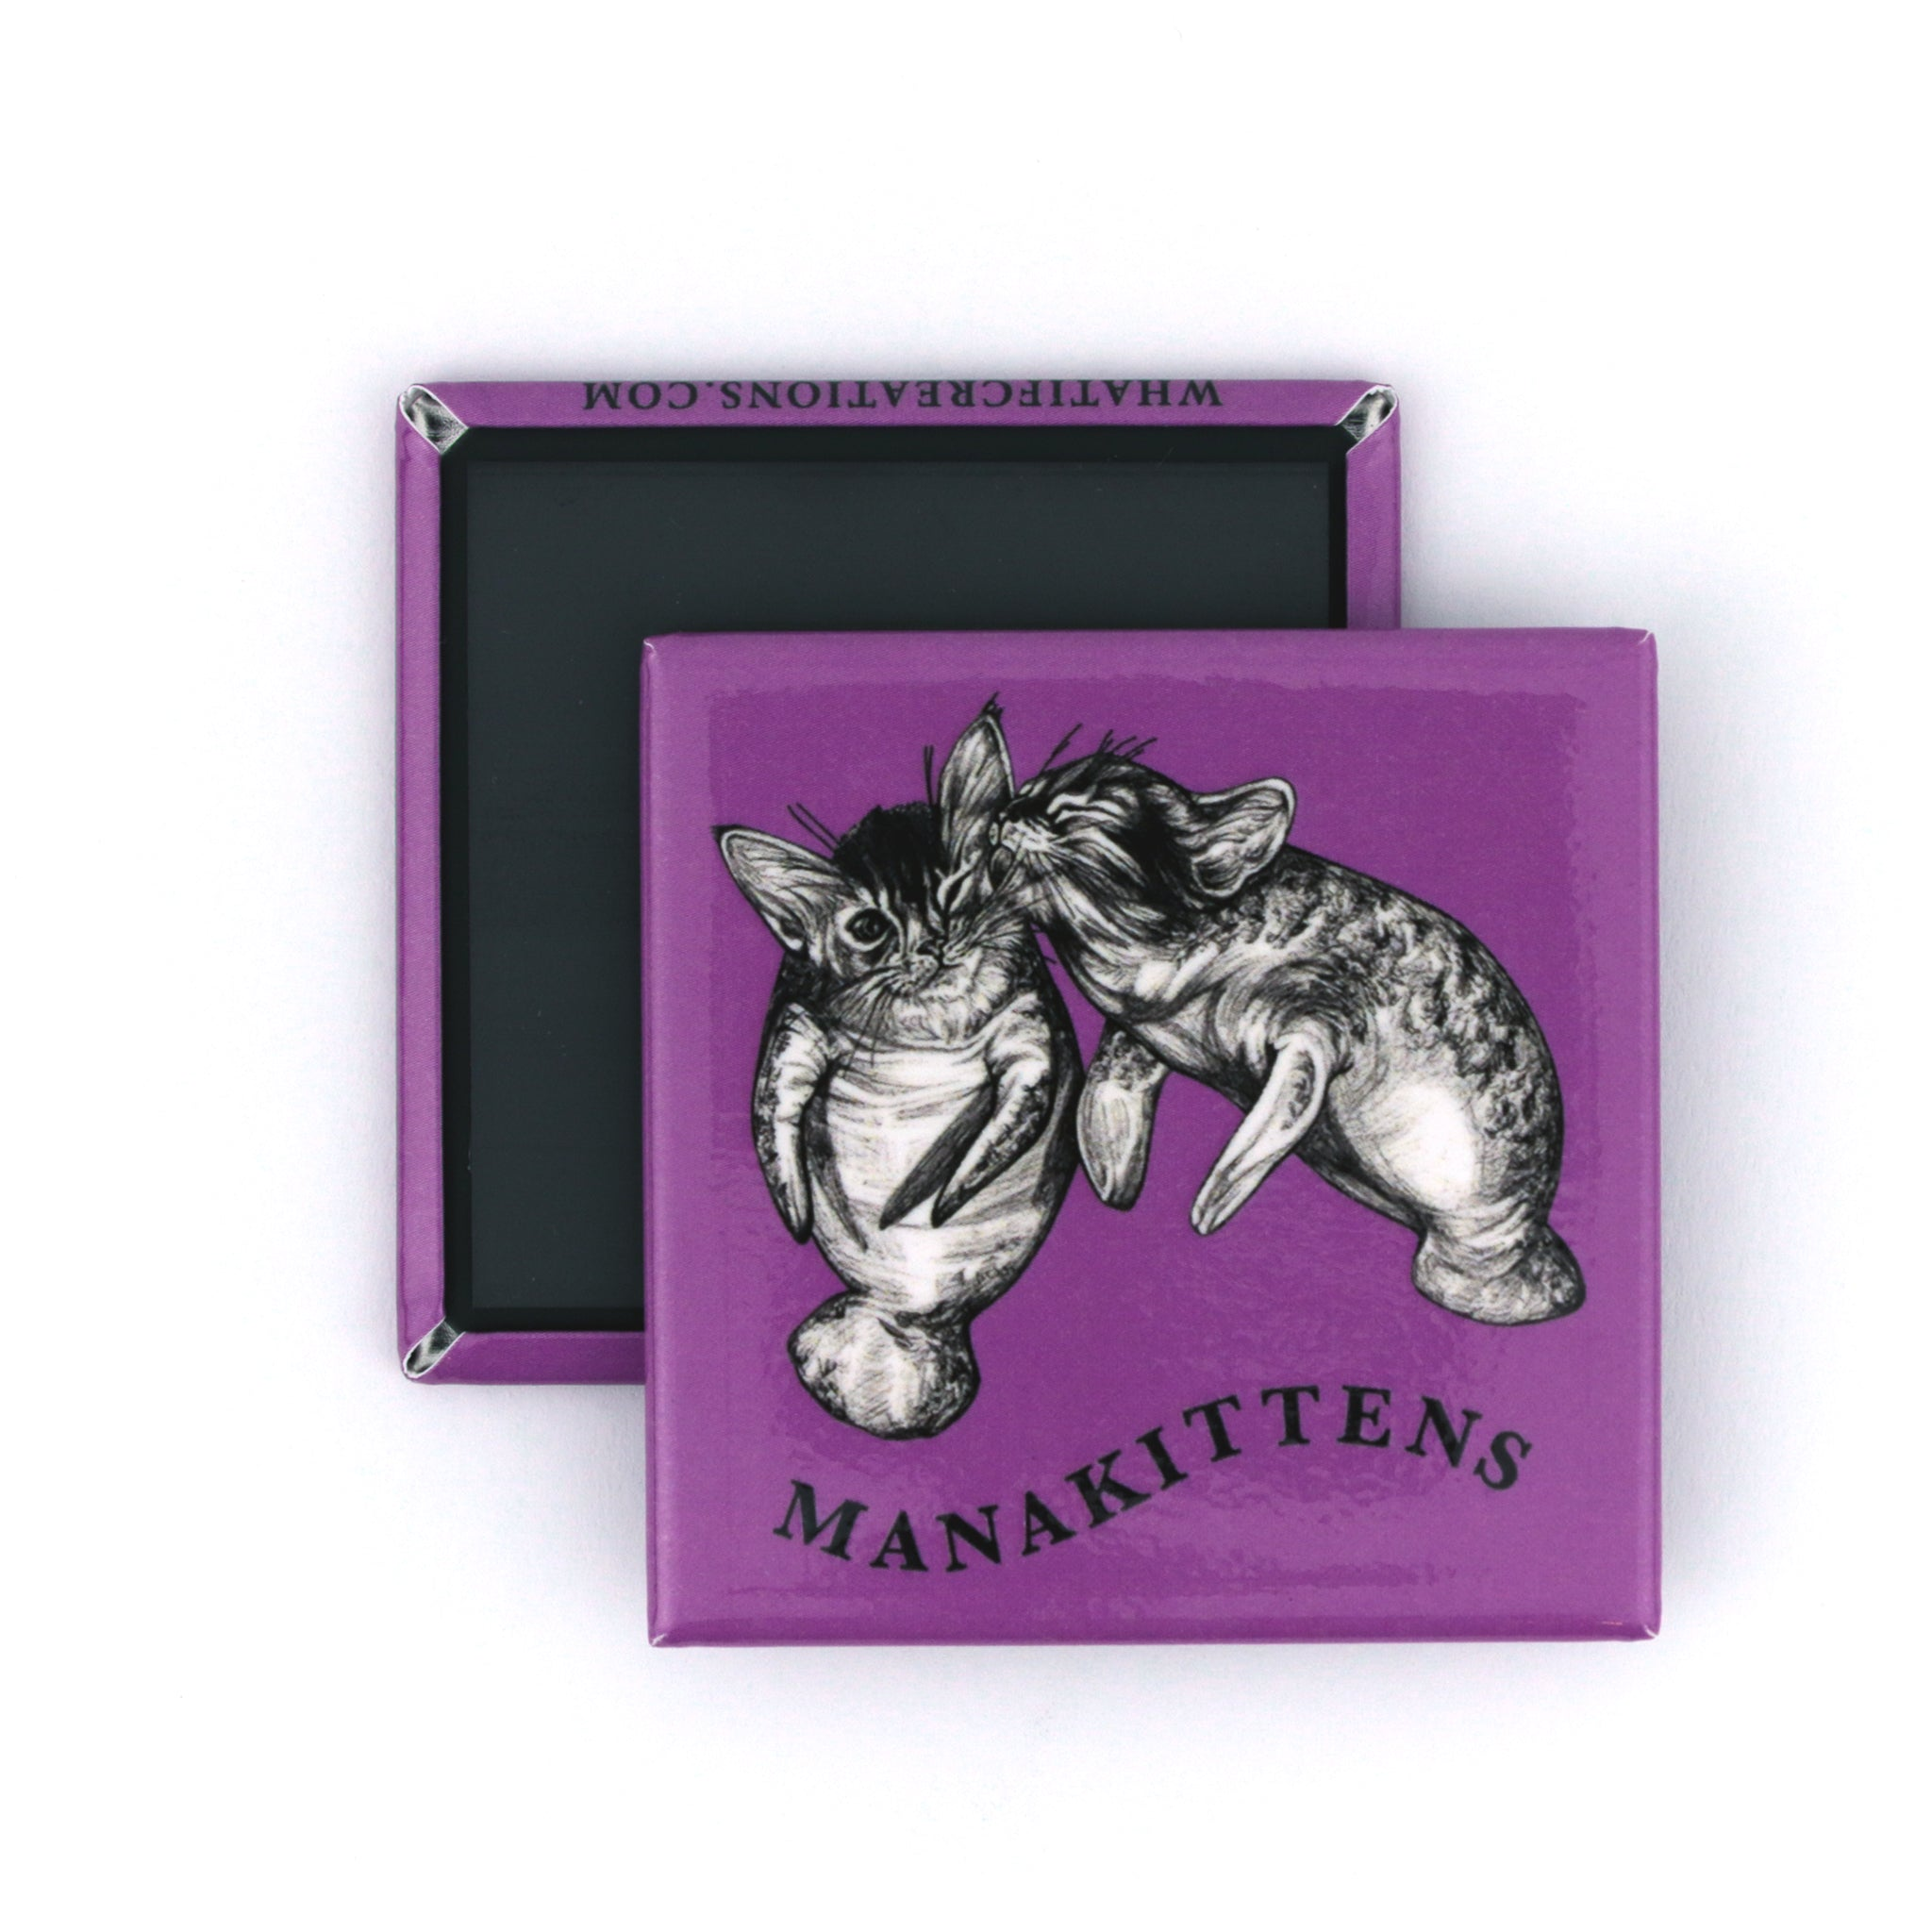 "Manakittens 2"" Fridge Magnet"